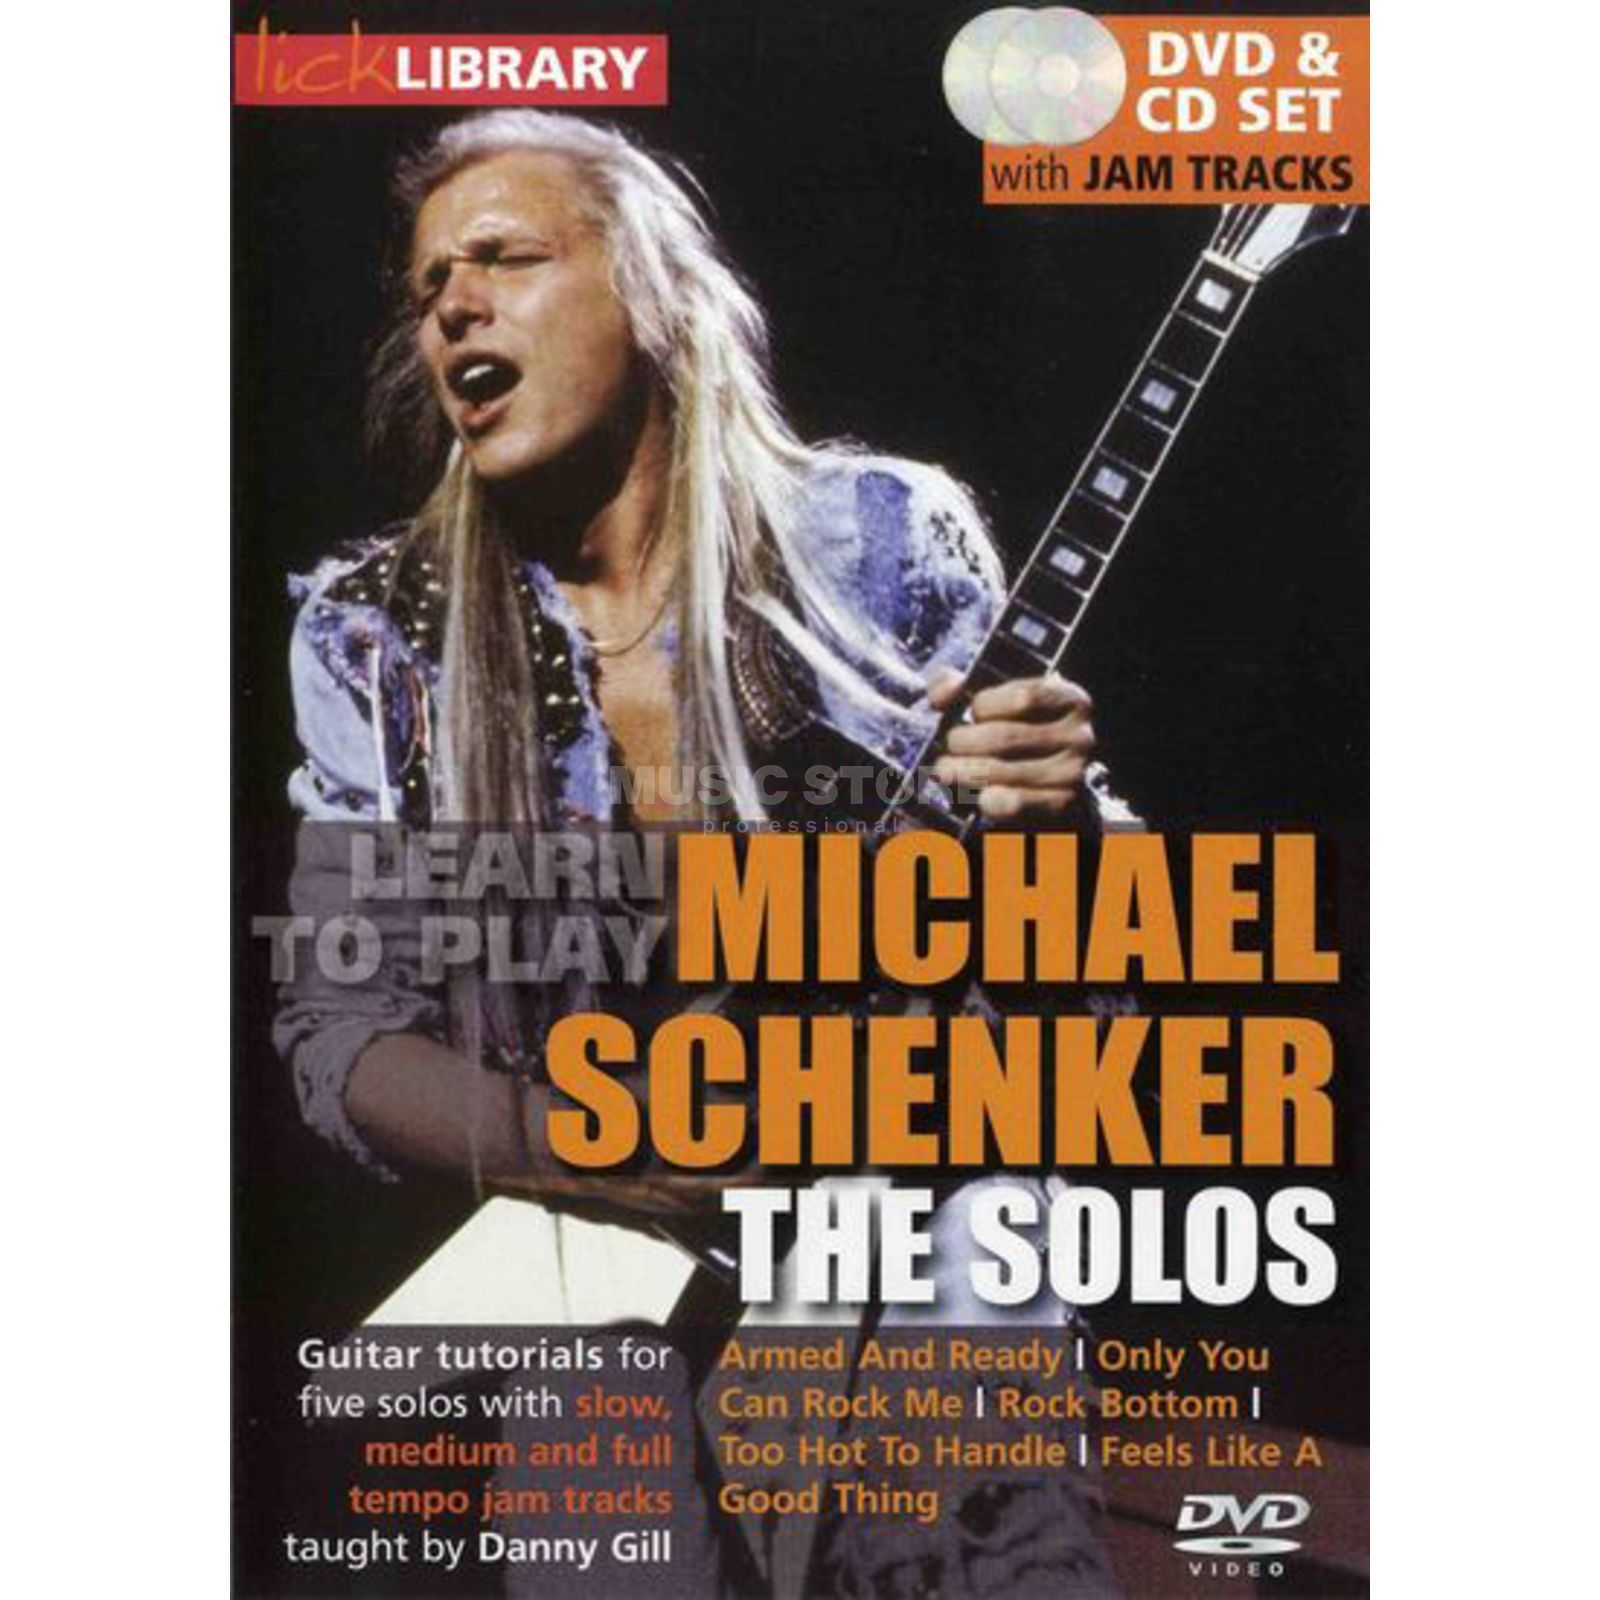 Roadrock International Lick Library: Learn To Play Michael Schenker - The Solos DVD Produktbild